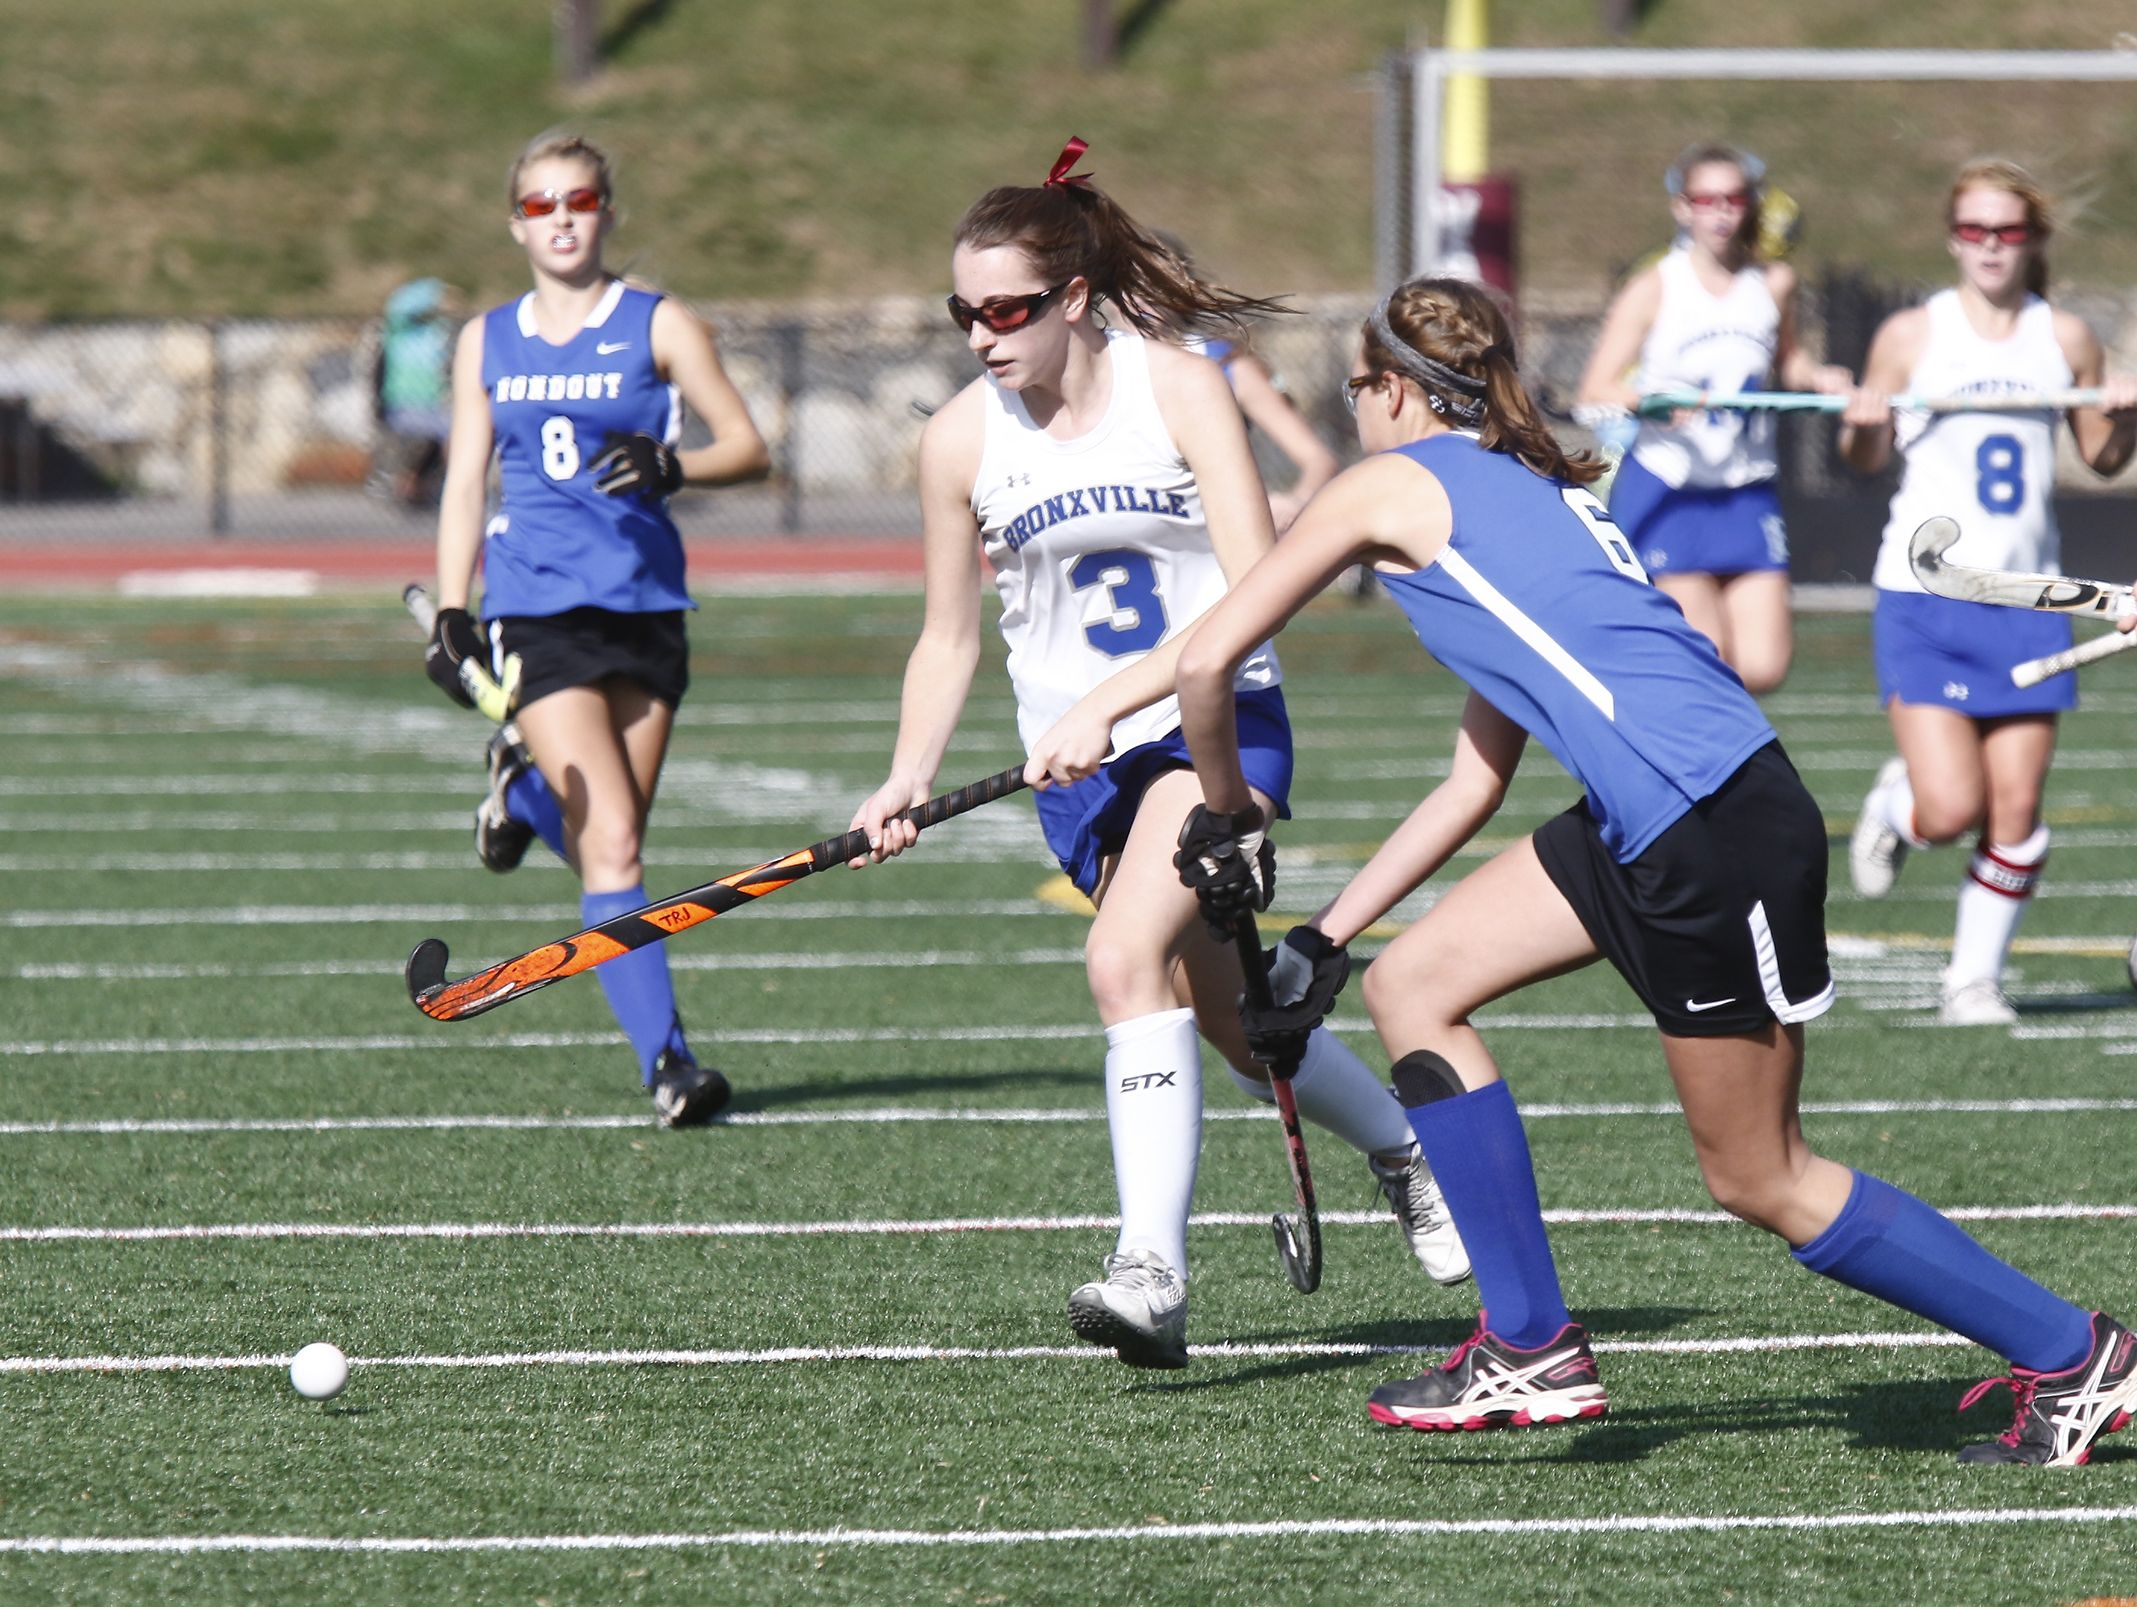 Bronxville's Mia Bettino (3) works past Roundout Valley's Paige Bogart (6) in the Class C regional championship field hockey game at Valhalla High School on Saturday, November 5, 2016.